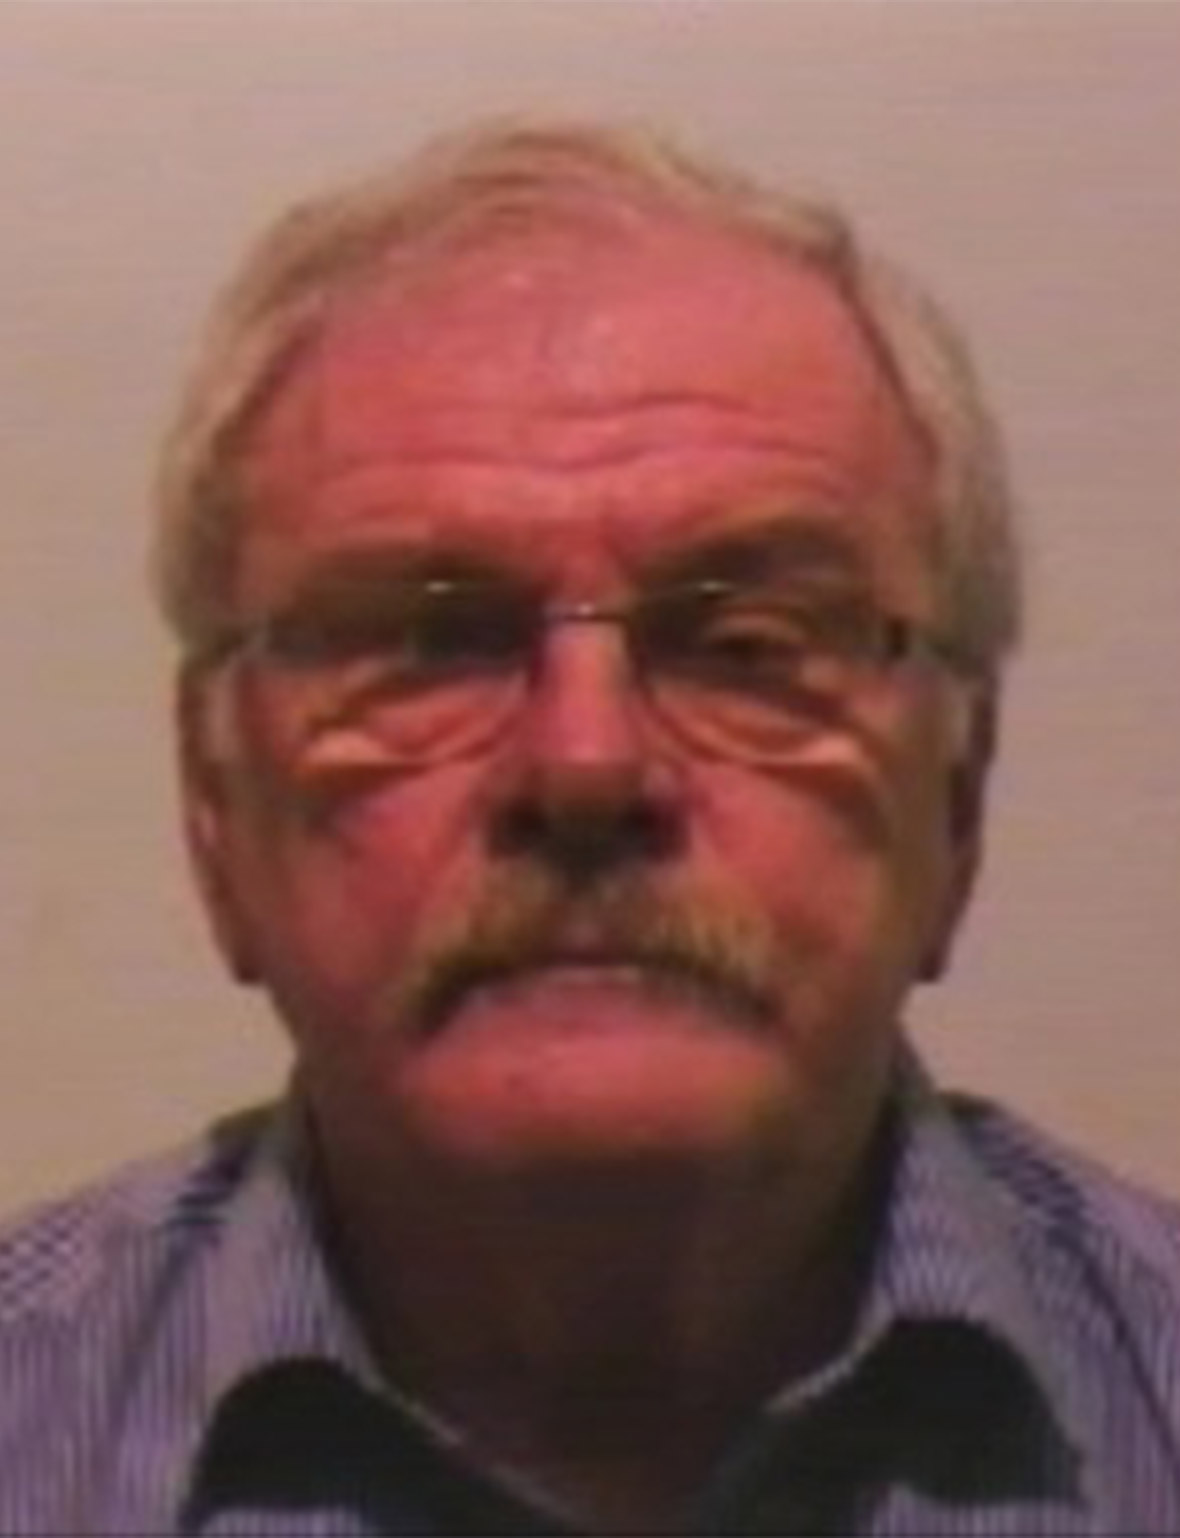 Colin gregg heir to greggs bakery sexually abused boys Gosforth swimming pool opening times